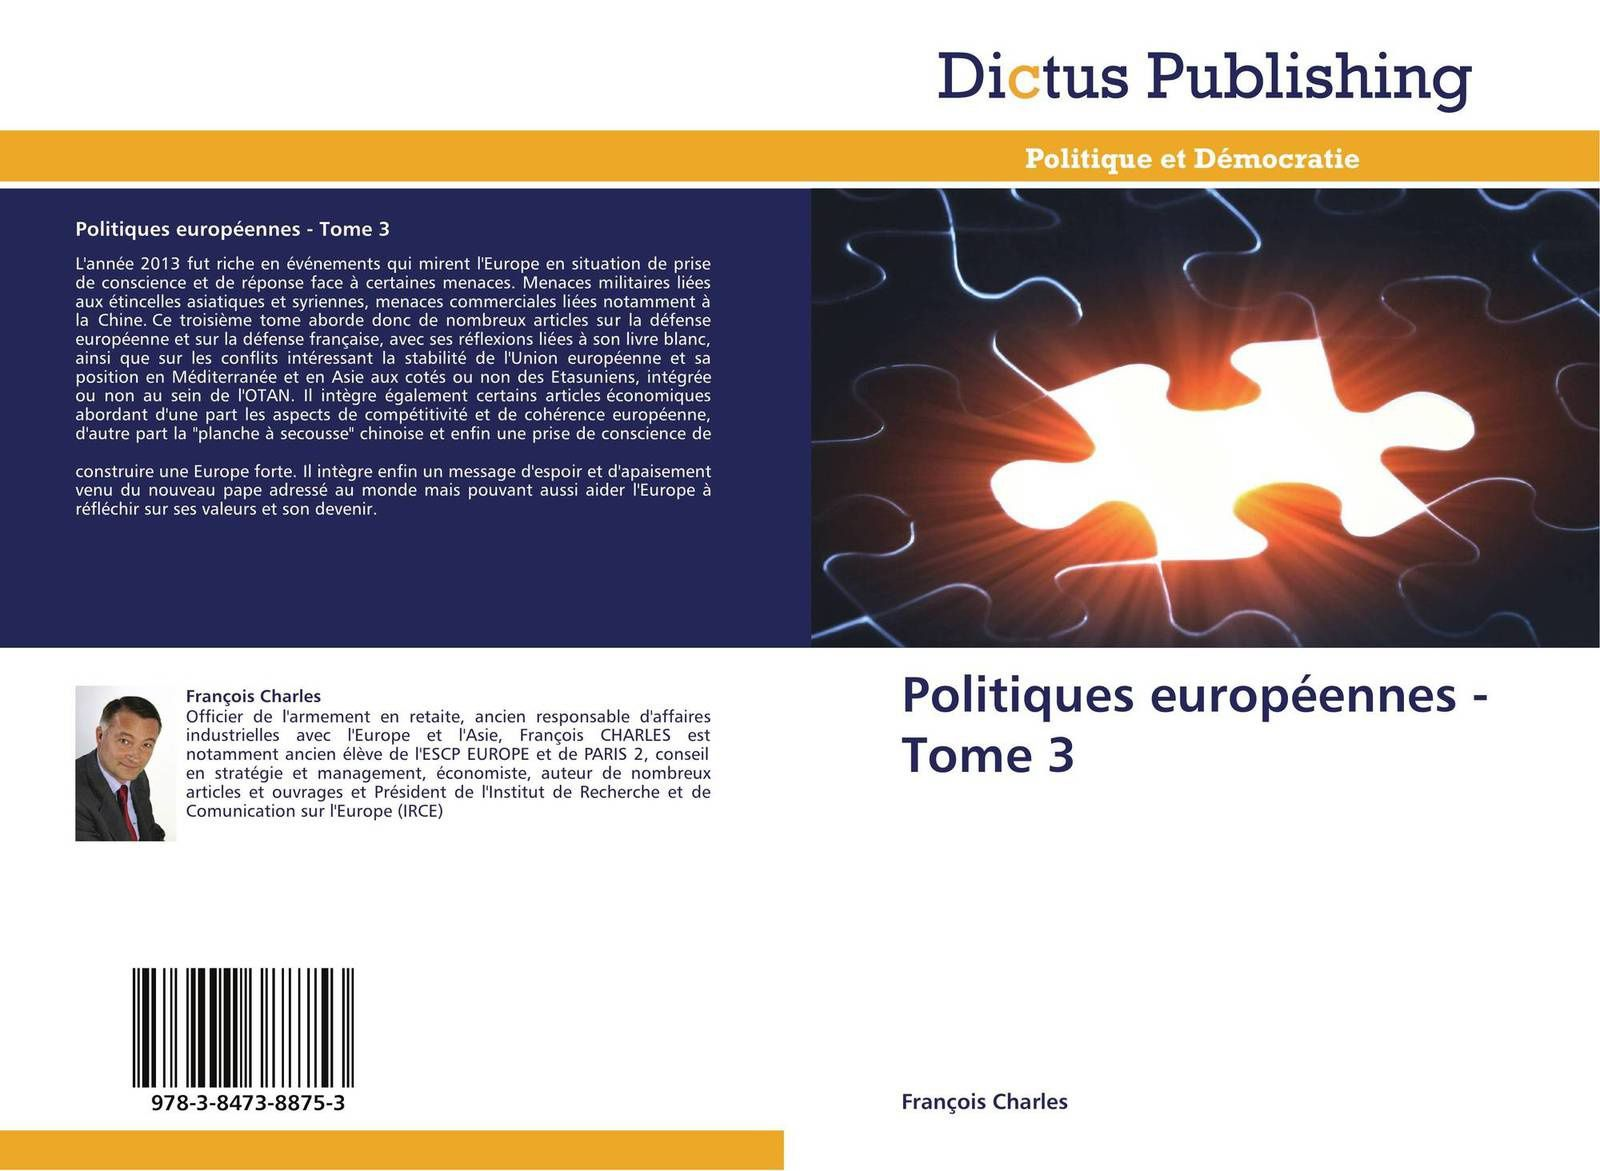 POLIIQUES EUROPEENNES  TOME 3